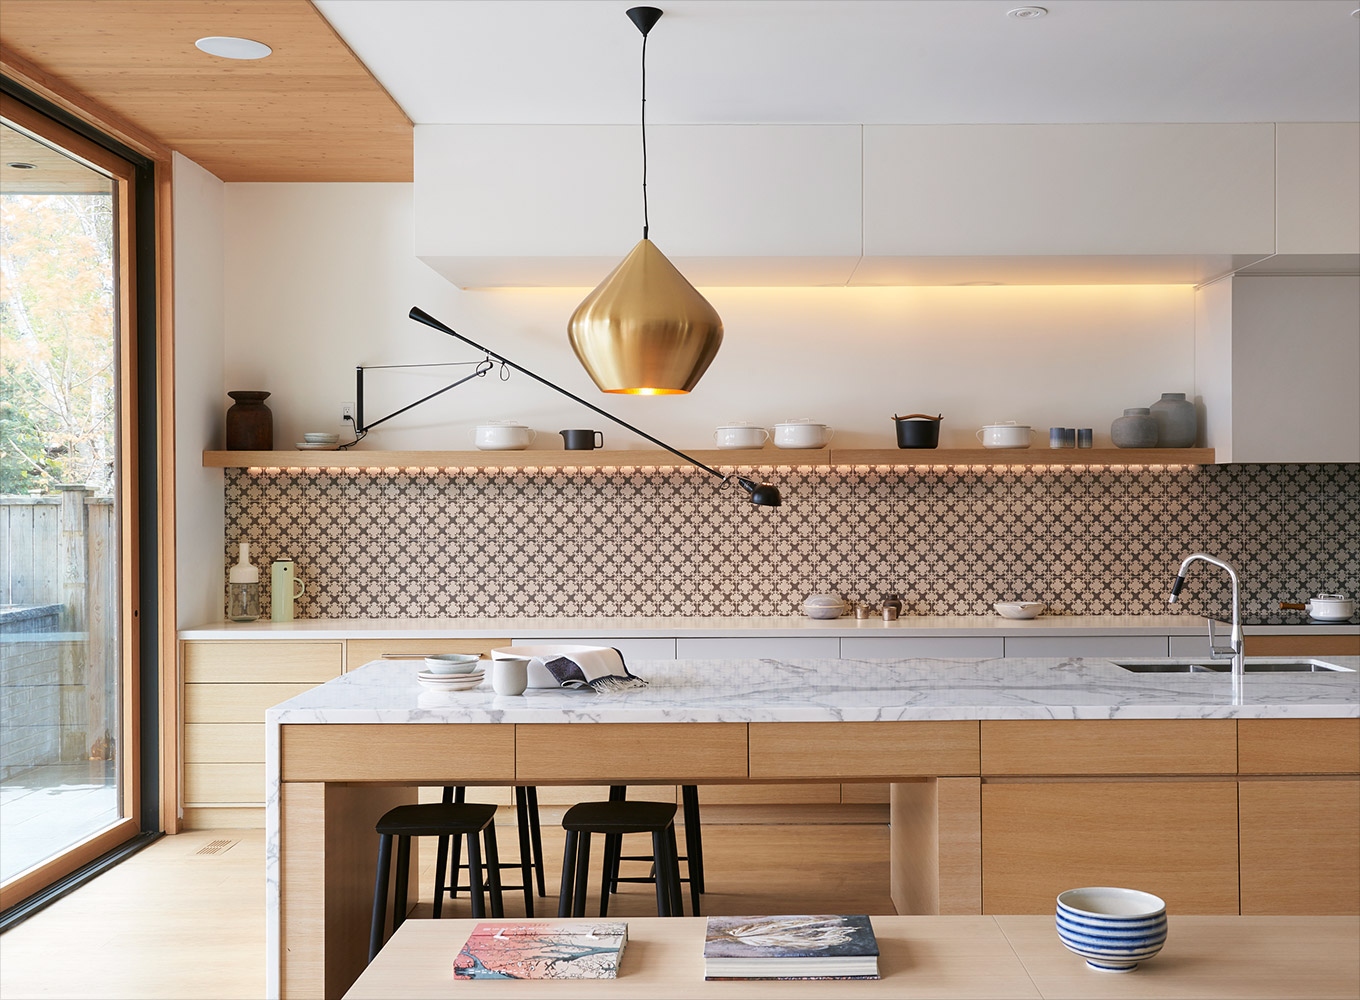 Modern kitchen with gable end marble island and counter with brass hanging light and accent tile backsplash